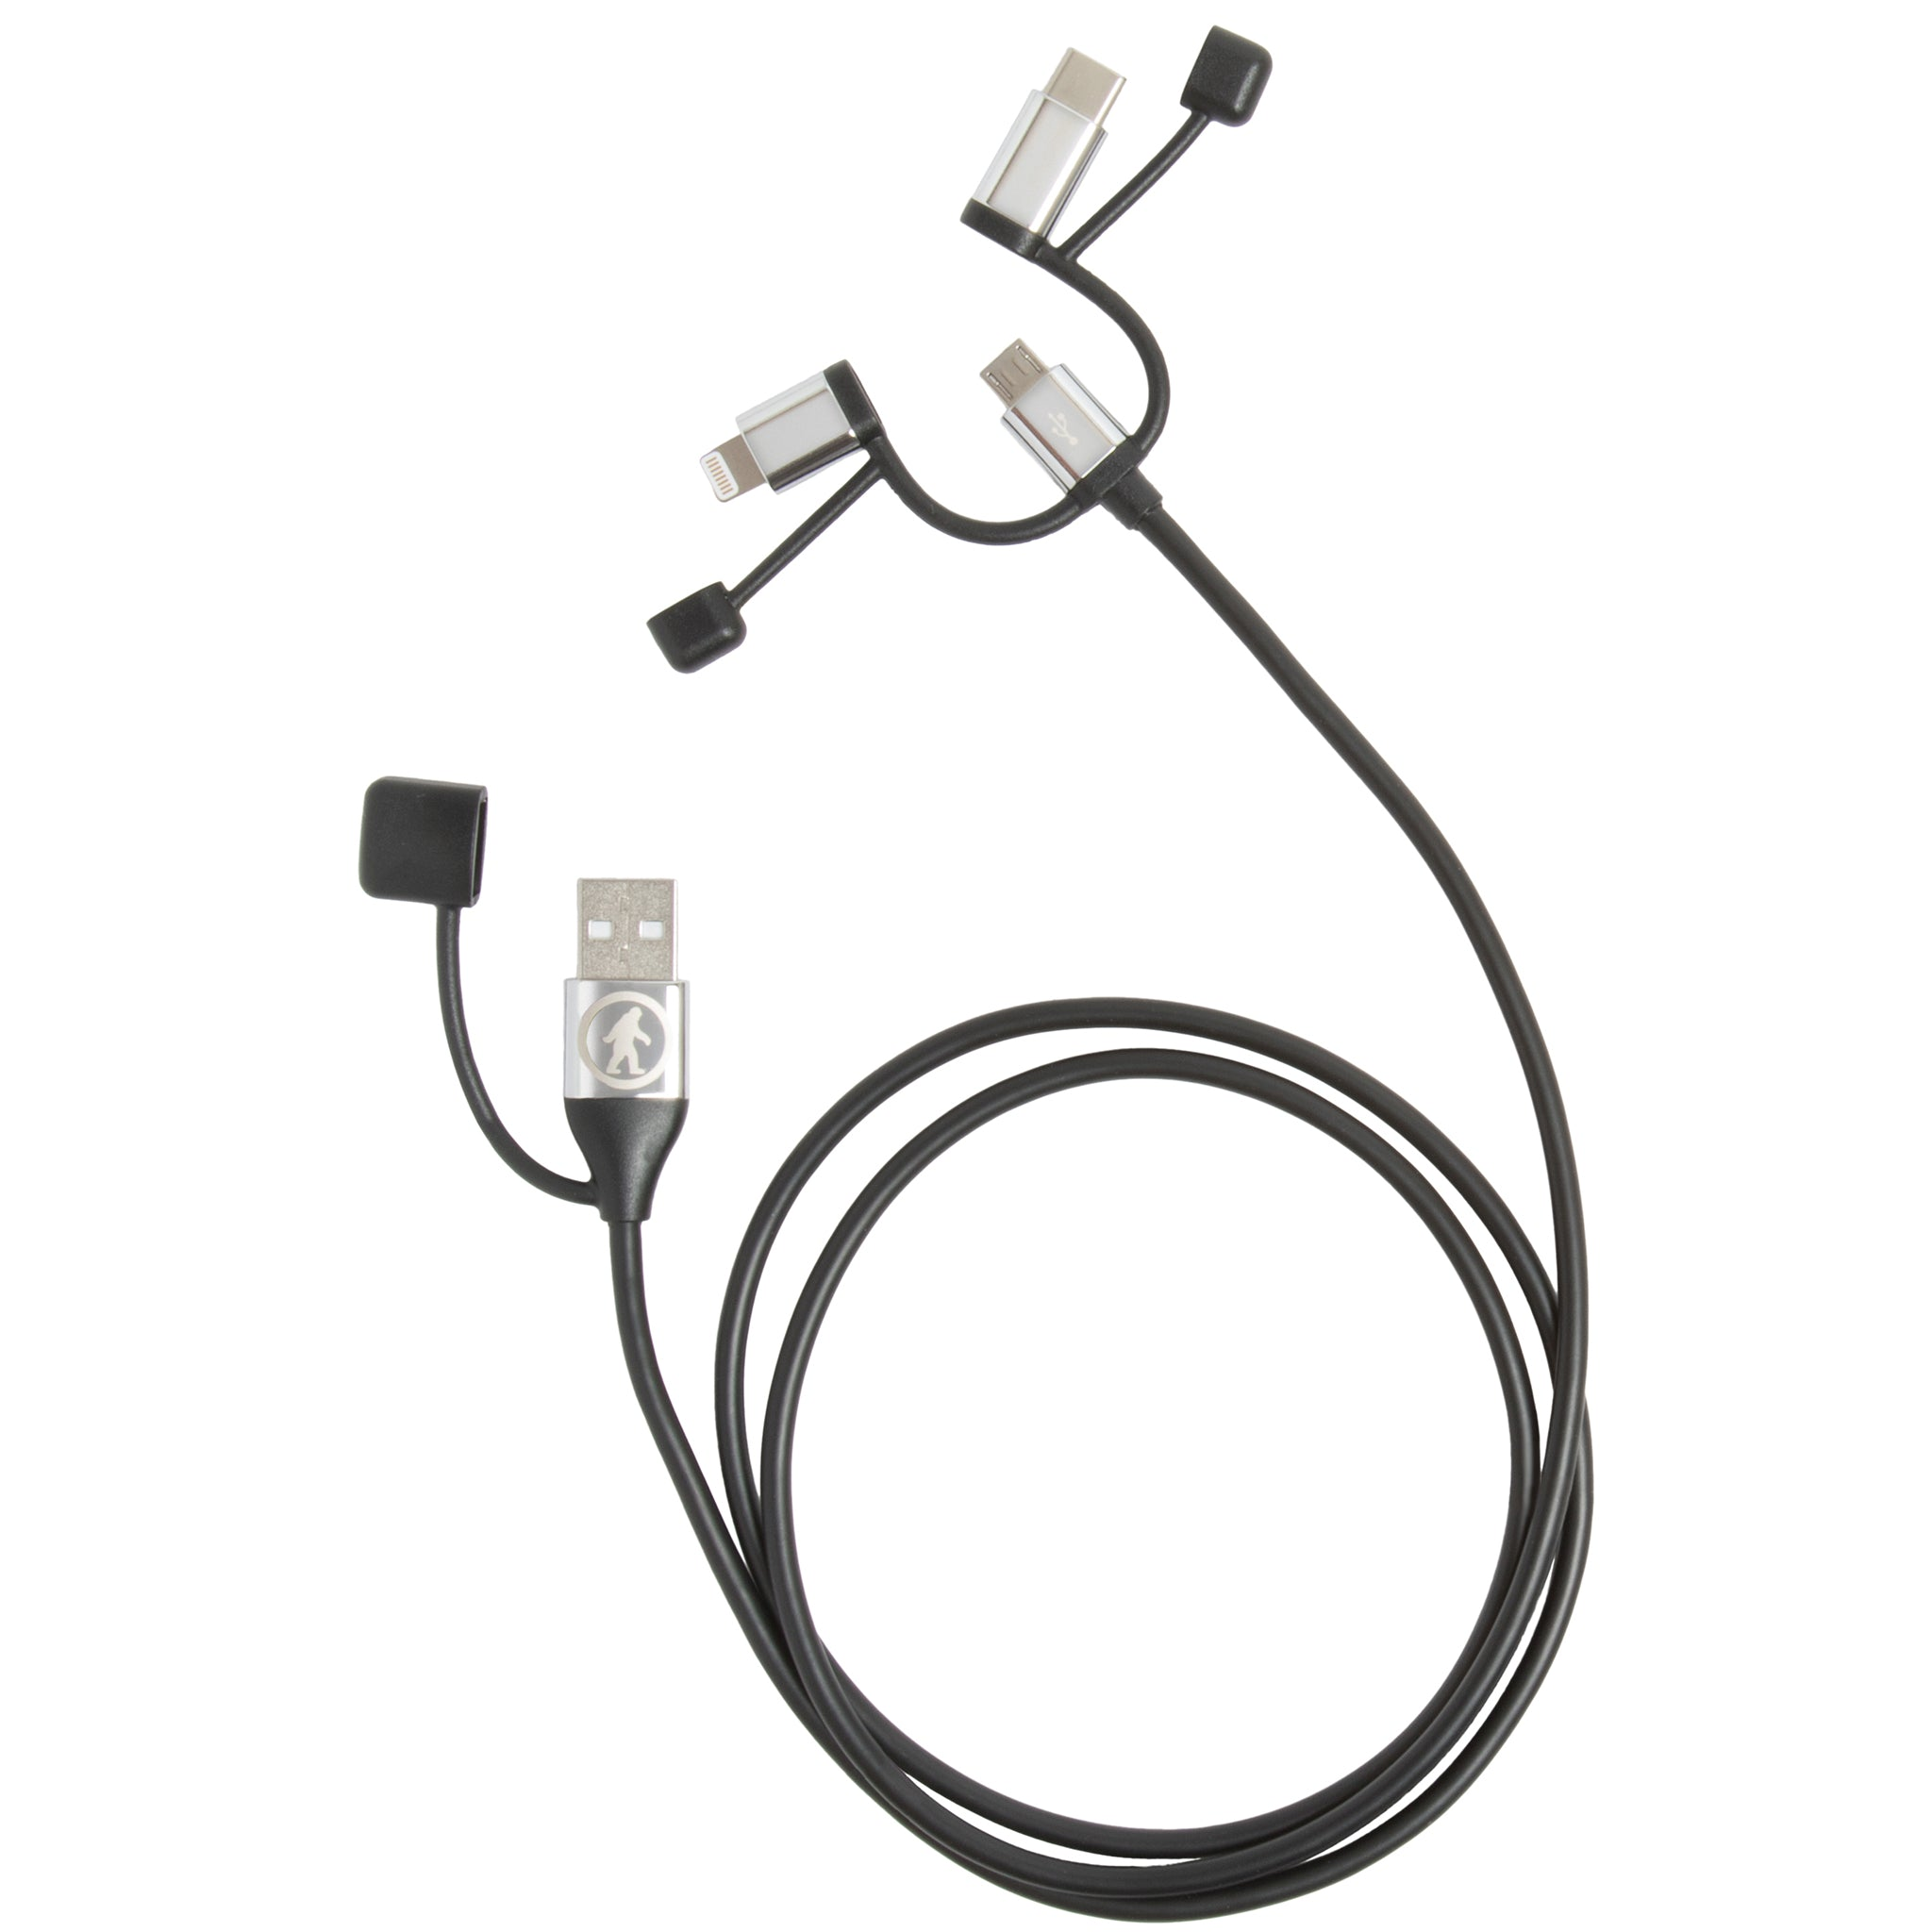 Image of Calamari Ultra - Lightning, USB C, & Micro USB Cable